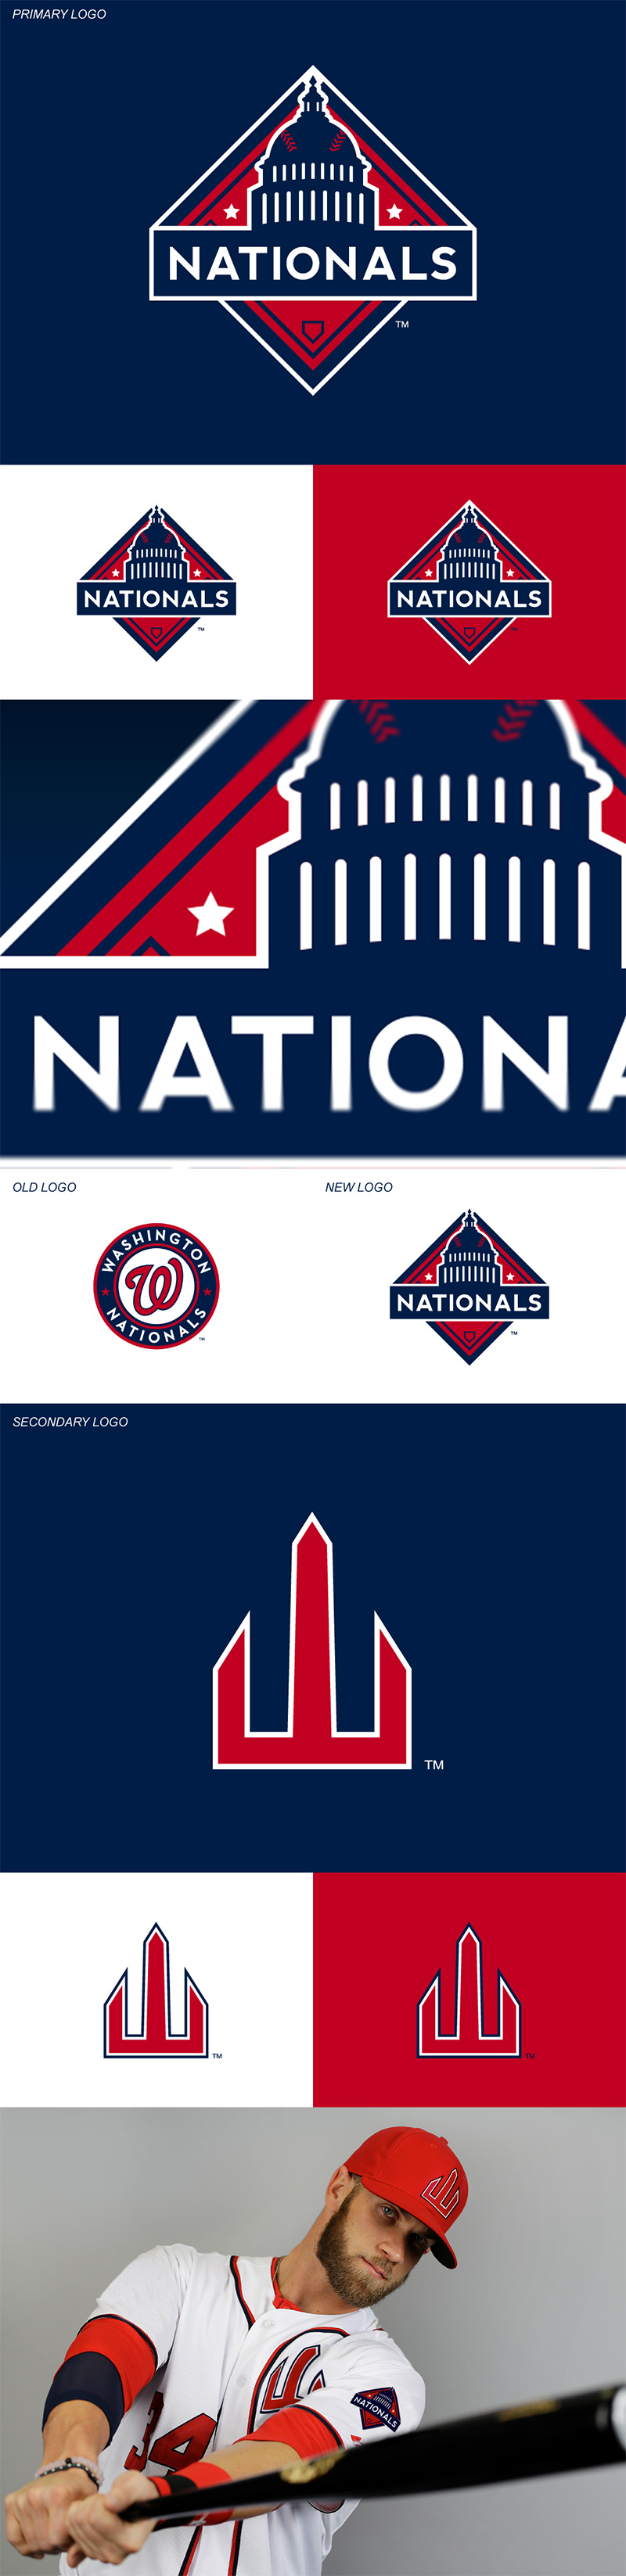 Washington Nationals Rebrand Concept by Evan Hessler